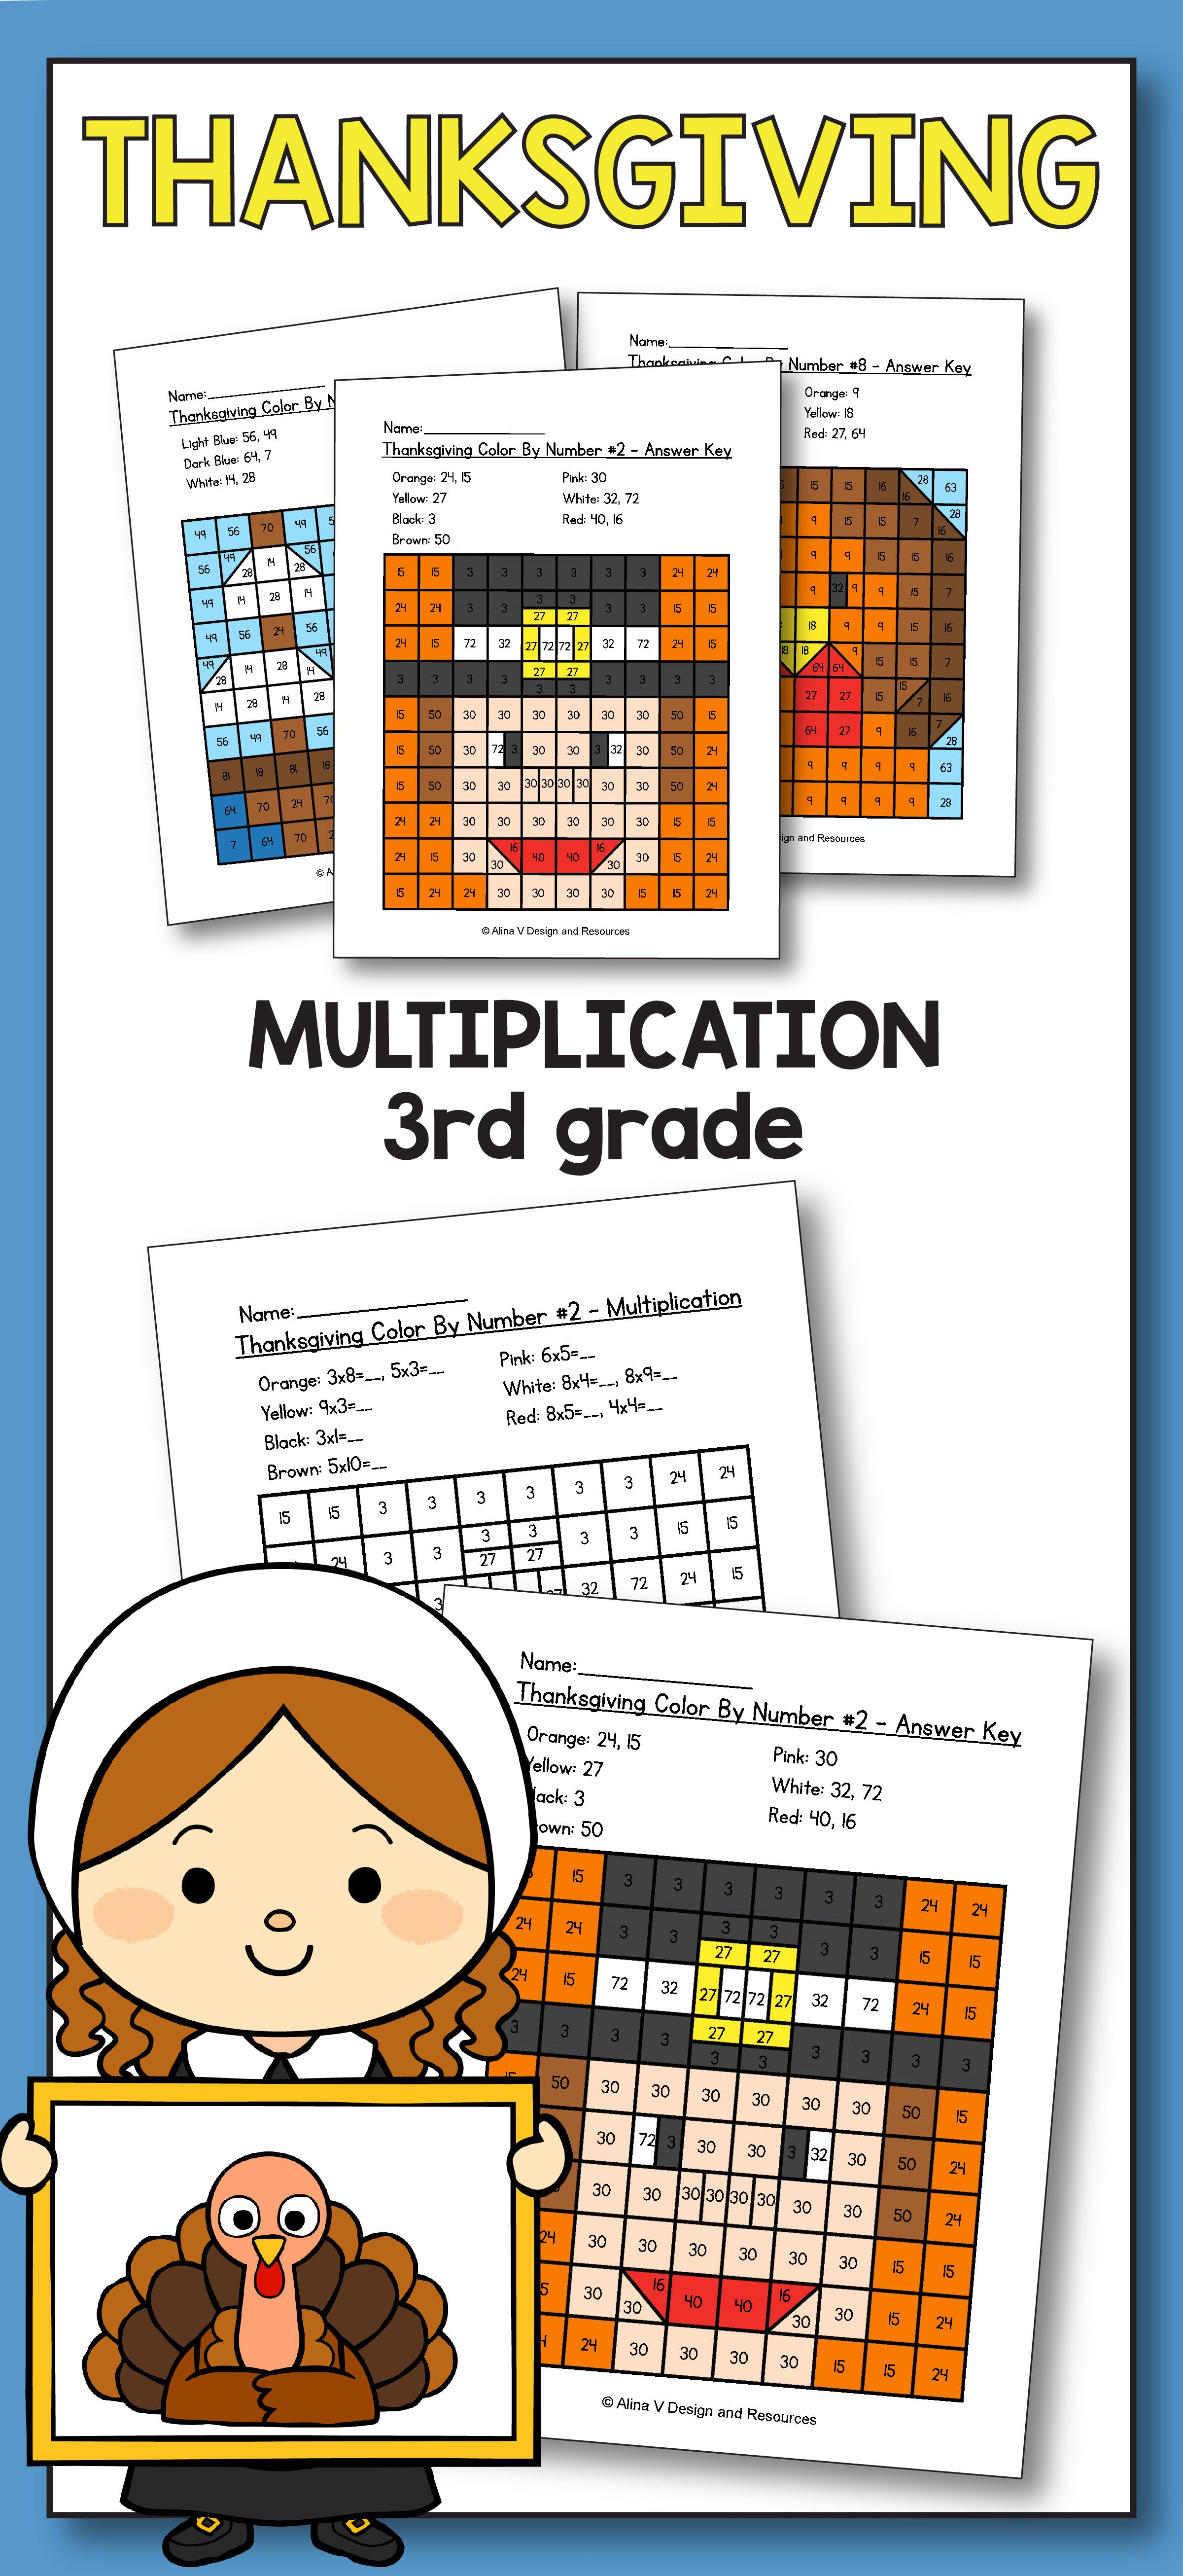 hight resolution of Thanksgiving Multiplication Math Worksheets for 3rd grade kids is fun with  the…   Thanksgiving math worksheets